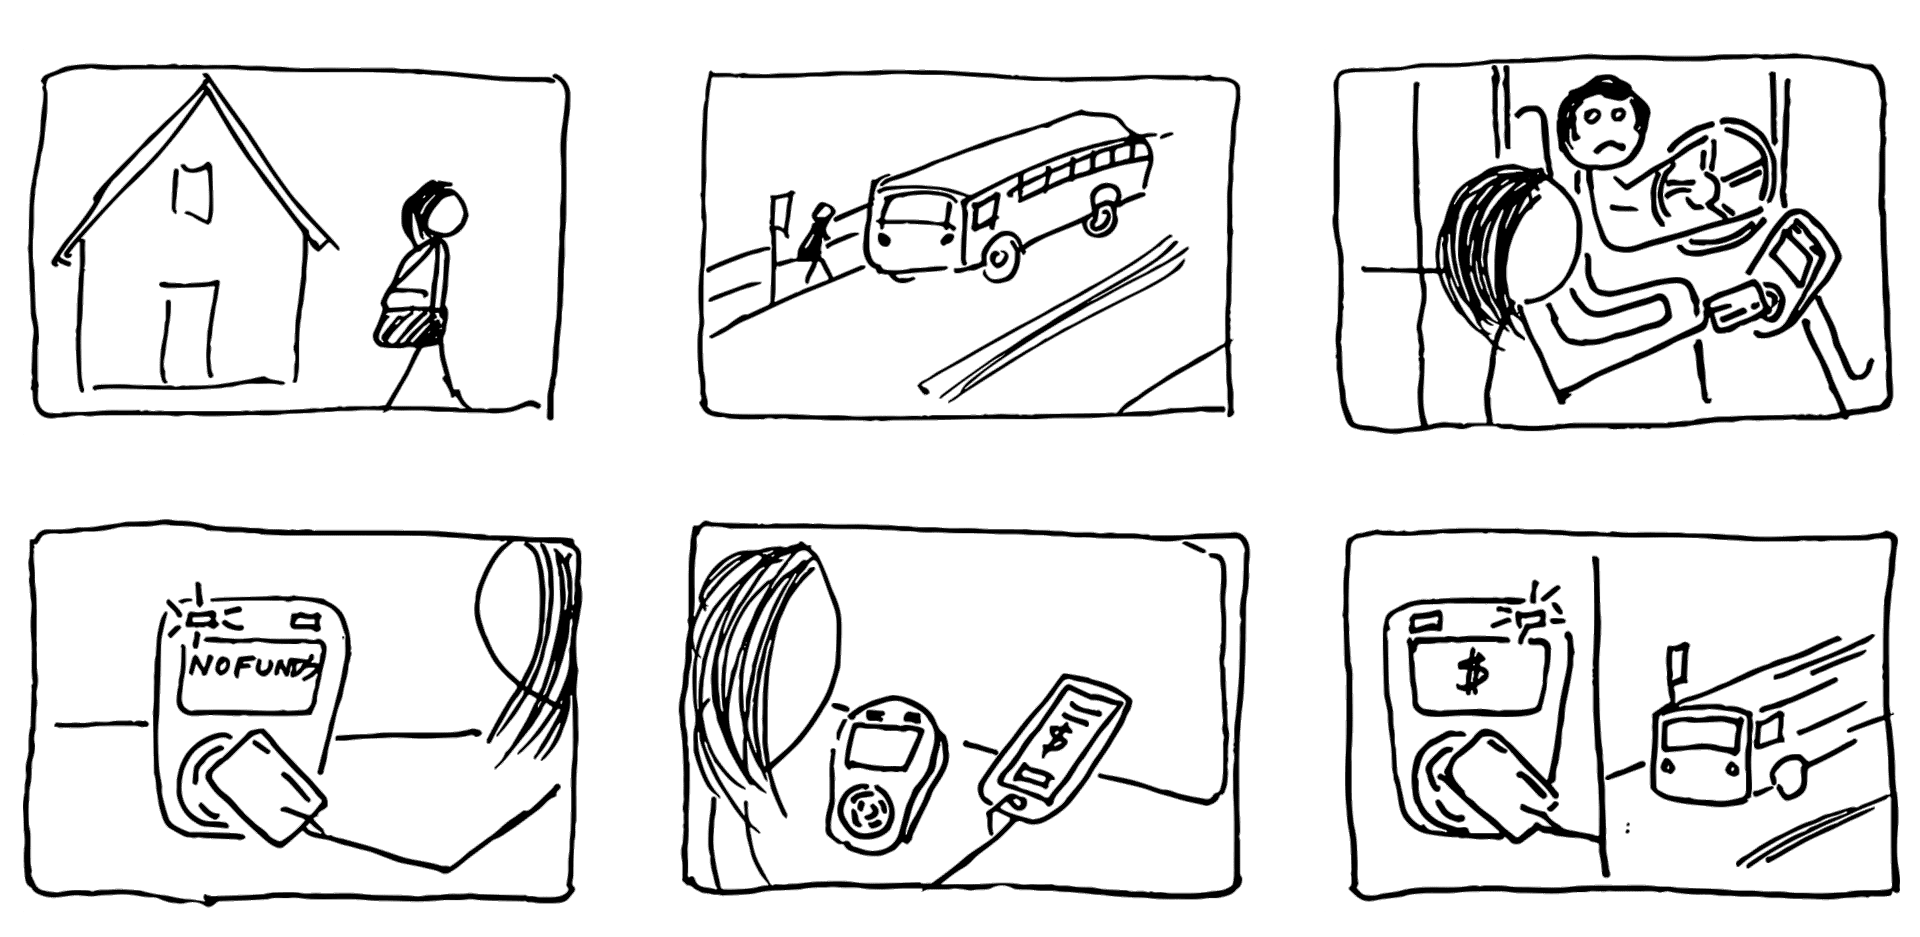 Orca Card 2 - Storyboard Two